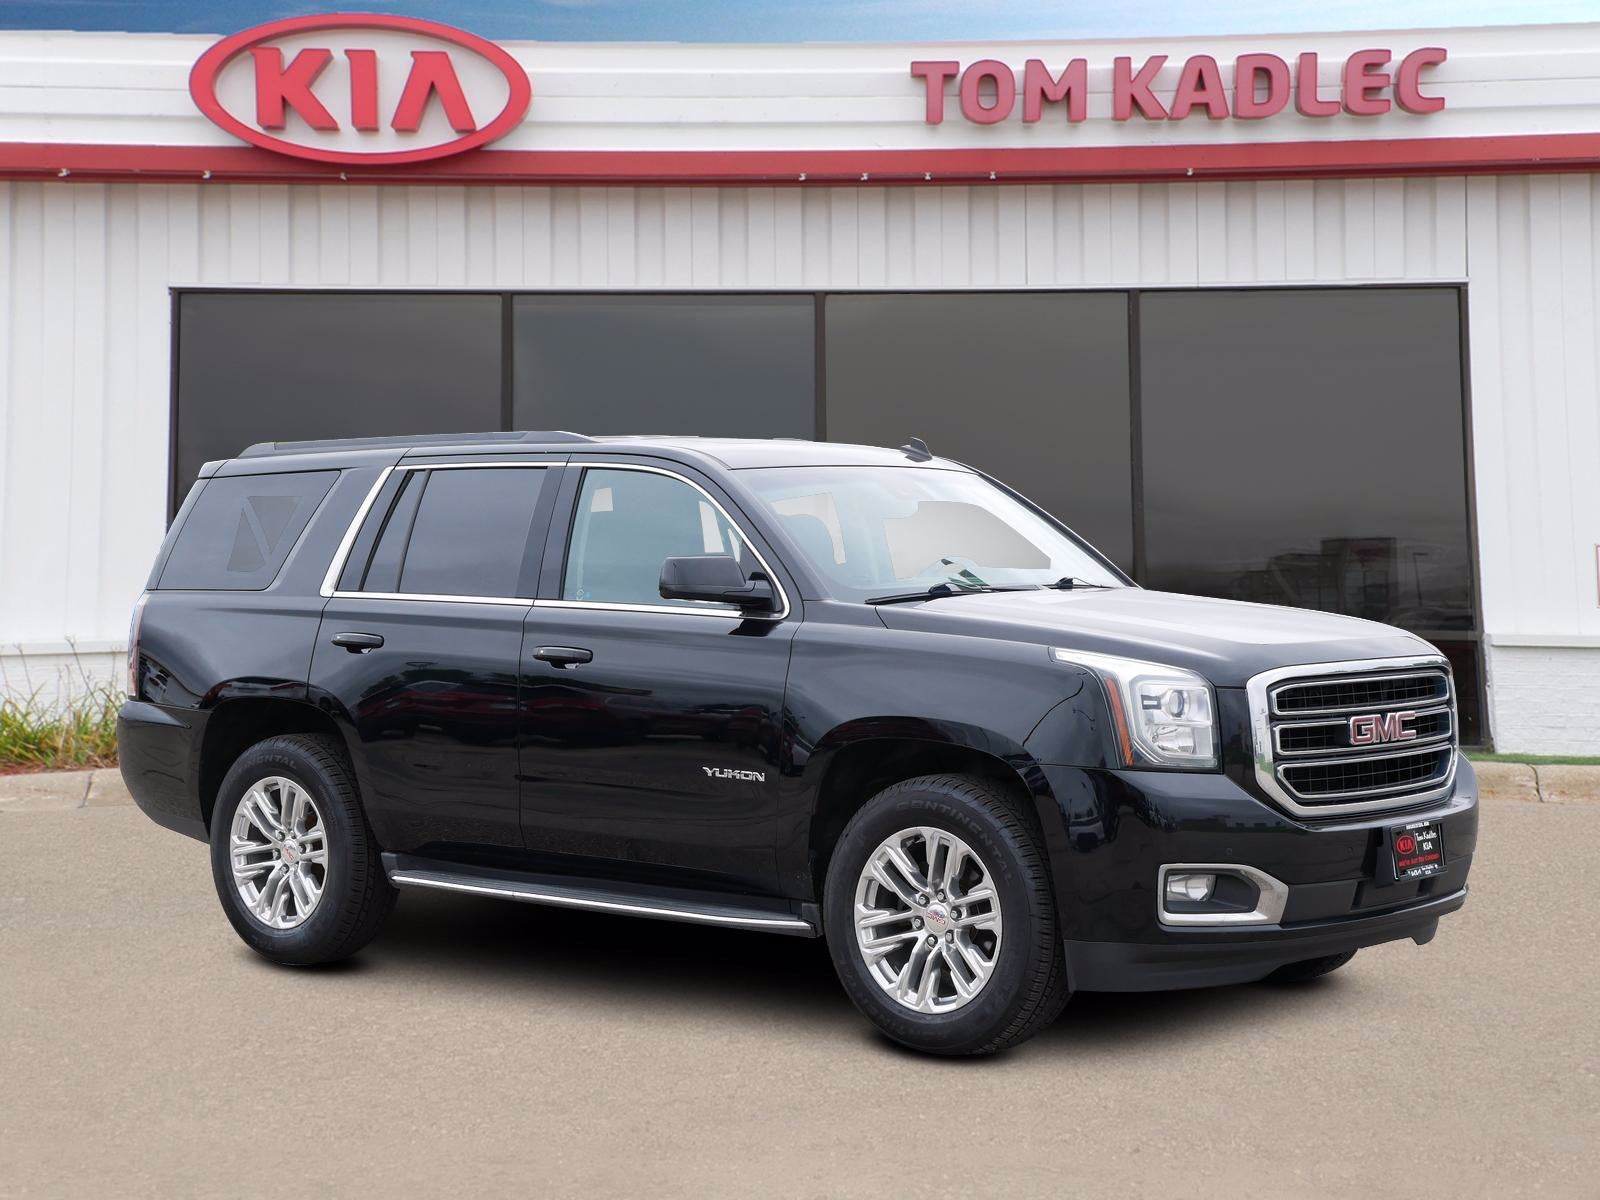 Used 2015 GMC Yukon SLT with VIN 1GKS2BKC1FR277531 for sale in Rochester, Minnesota